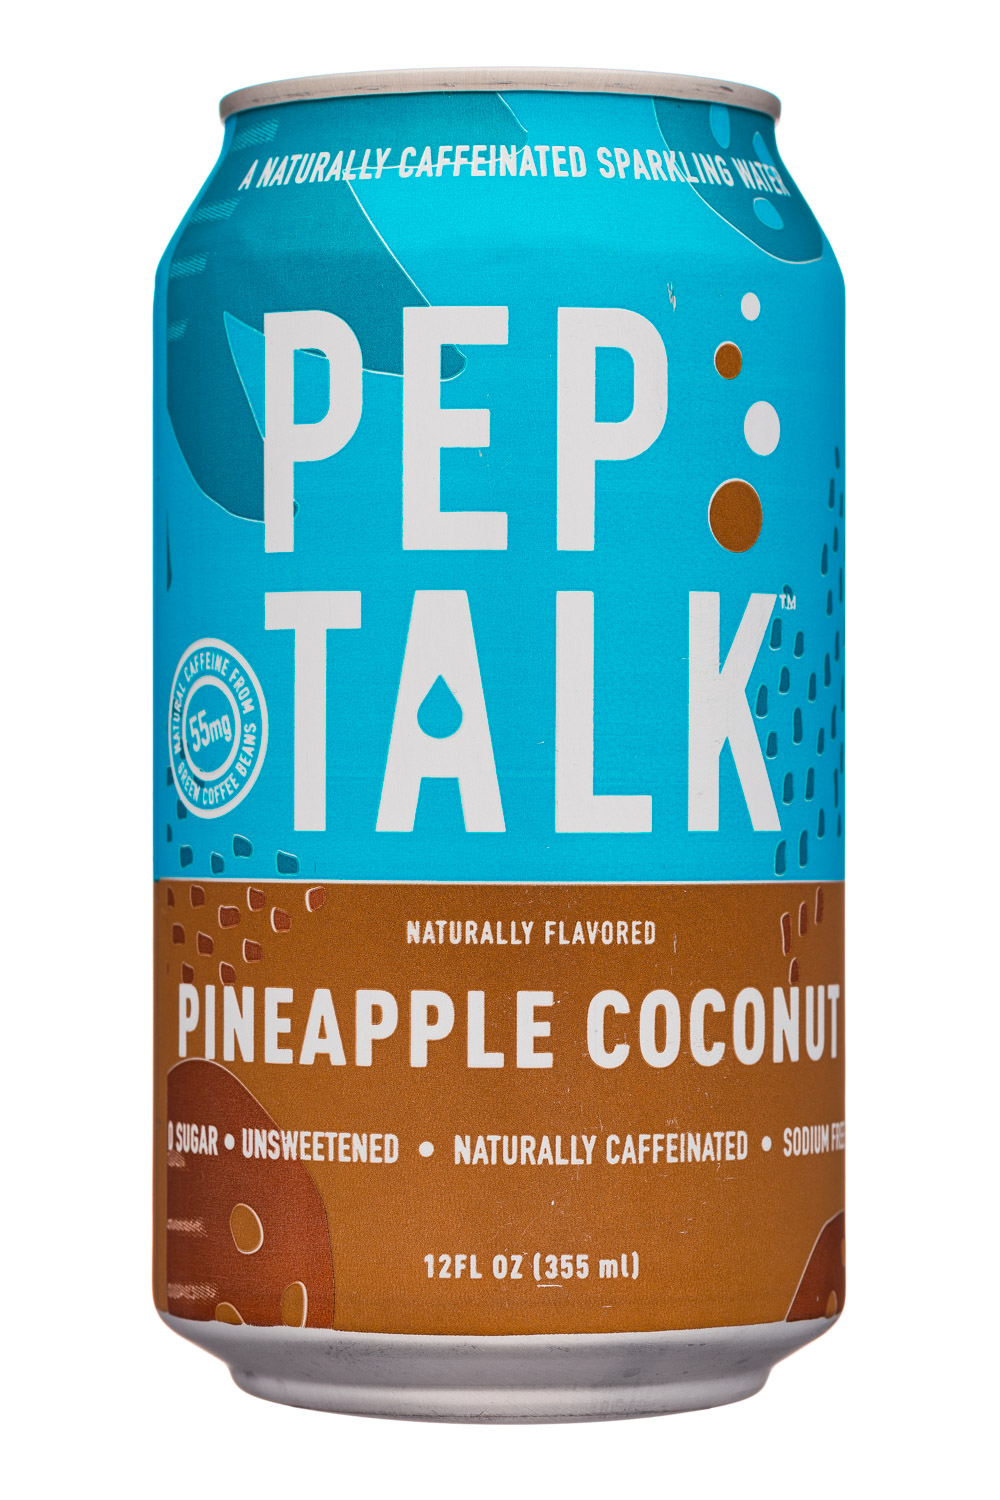 Pineapple Coconut - Naturally Caffeinated